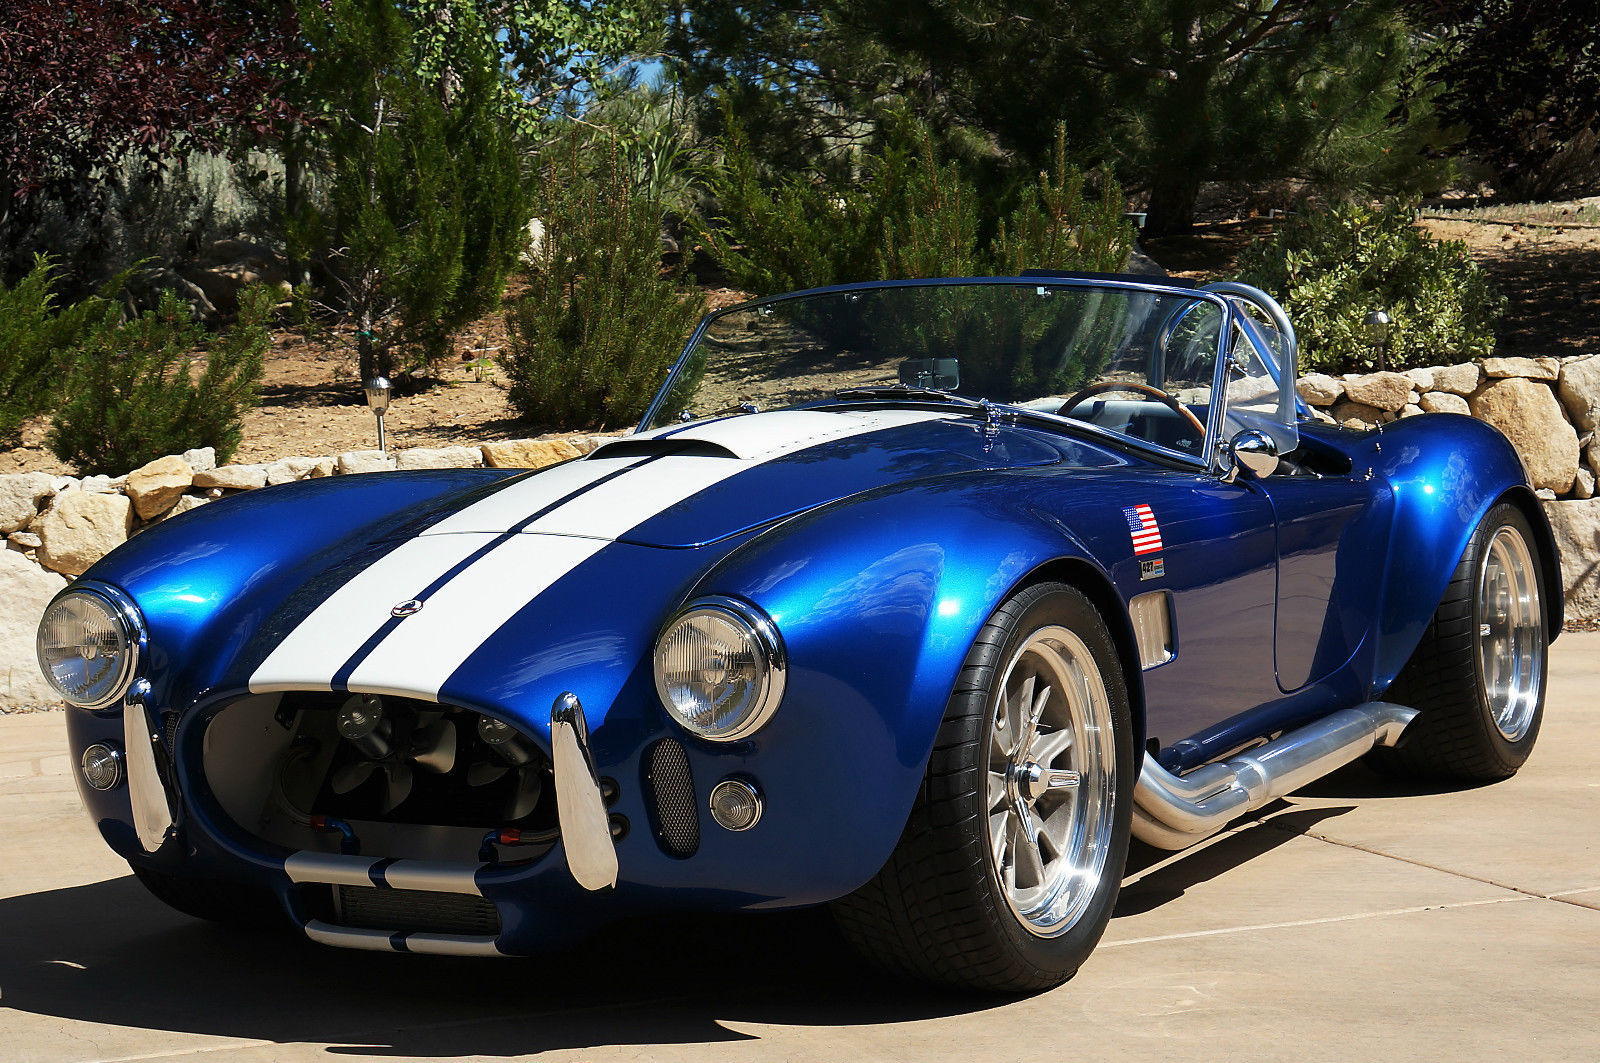 era 1965 shelby cobra replica era 430 blue w white stripes. Black Bedroom Furniture Sets. Home Design Ideas